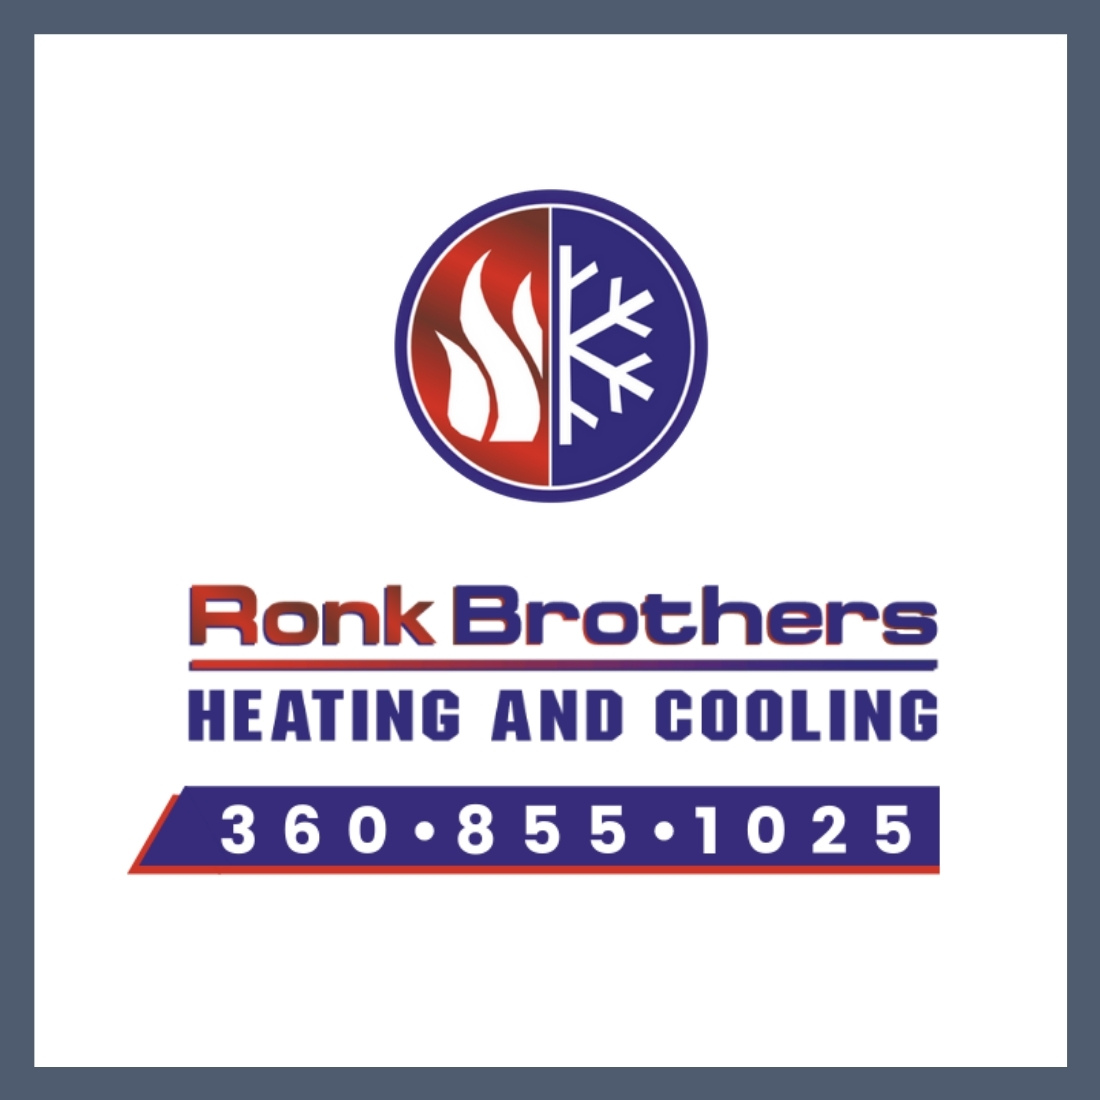 Ronk Brothers Heating and Cooling | Flexure Group